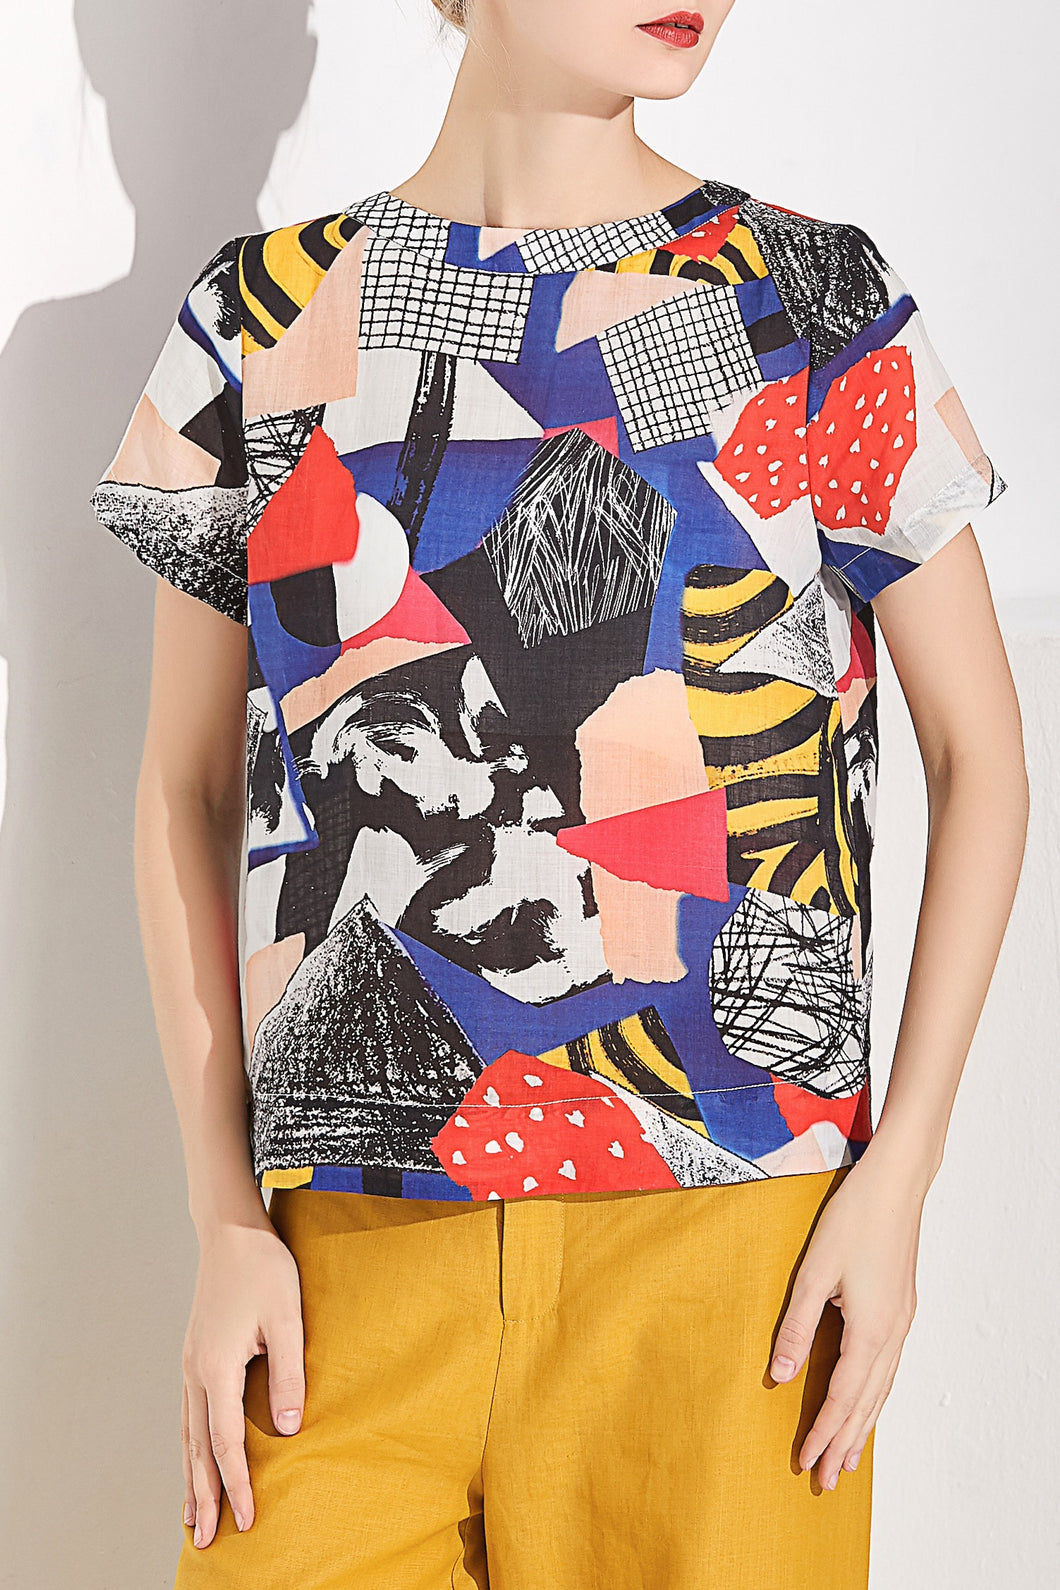 Patchwork Top by Ja.Socha